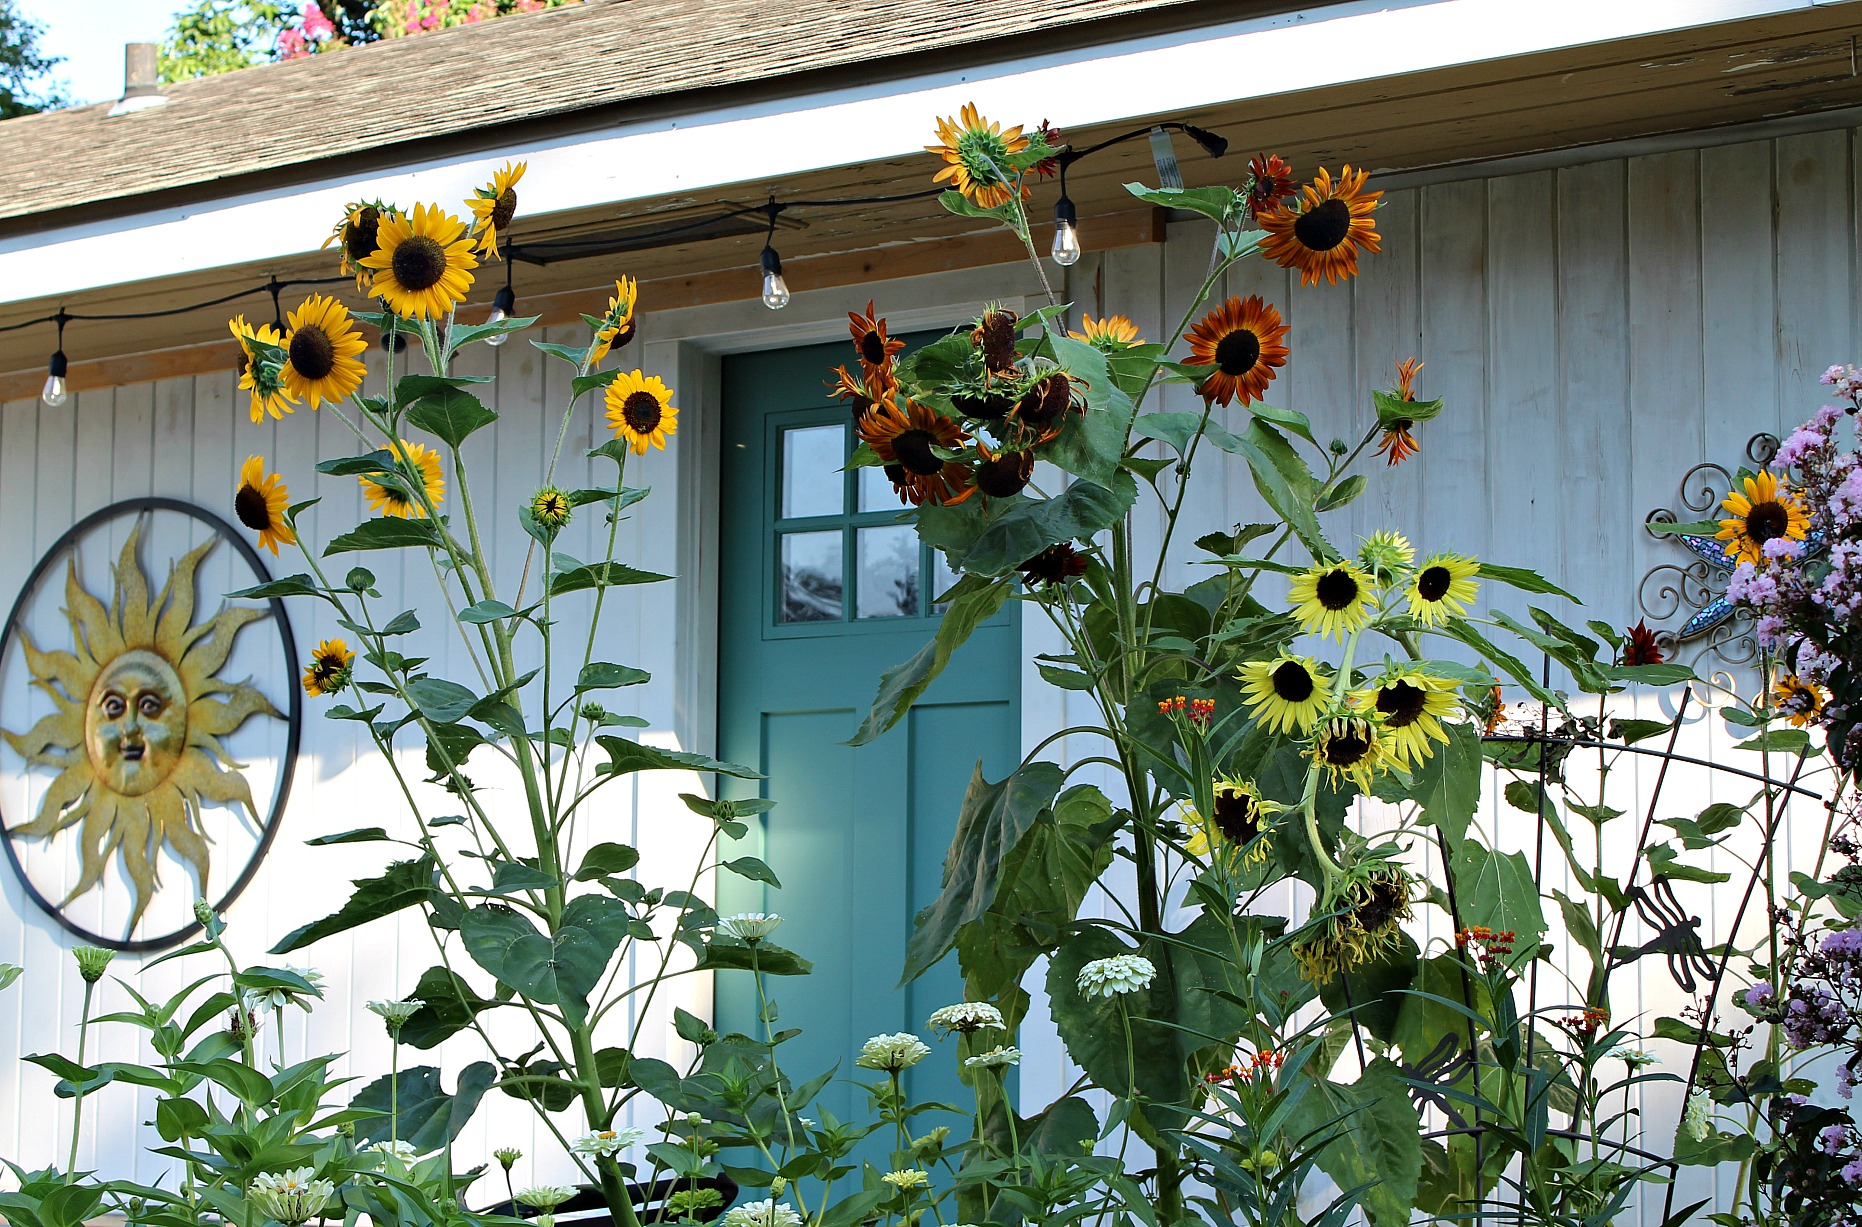 a variety of sunflowers outside in the backyard garden